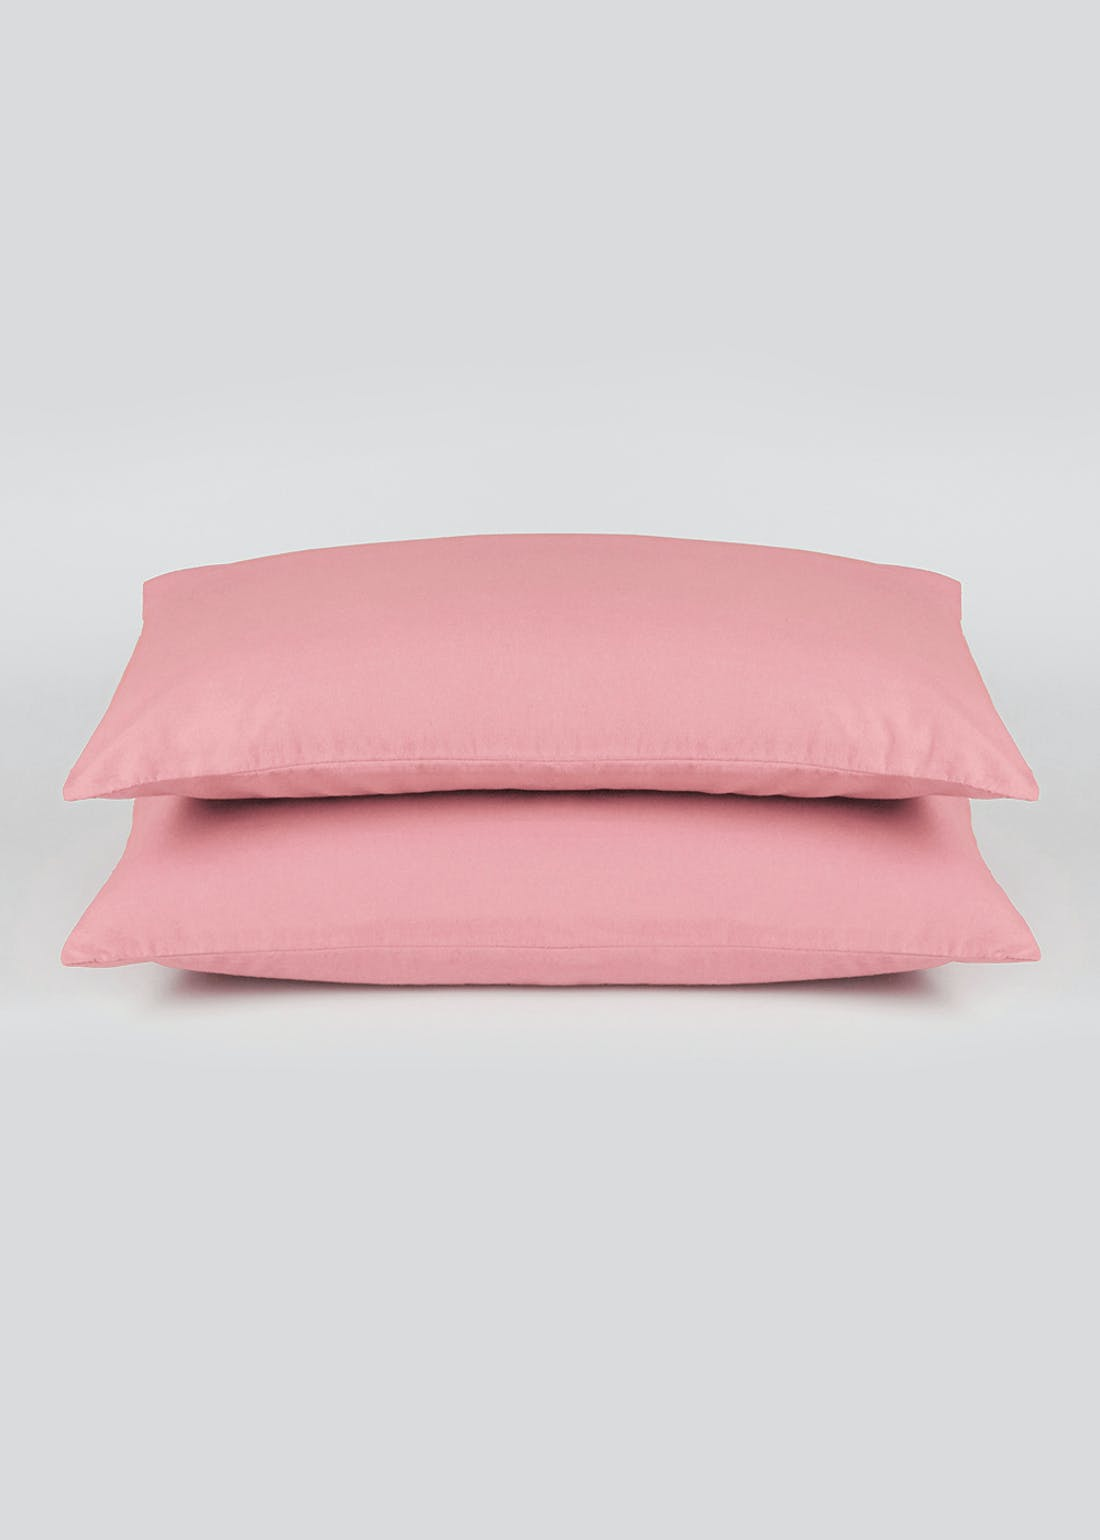 Cotton Percale Housewife Pillowcase Pair (180 Thread Count)